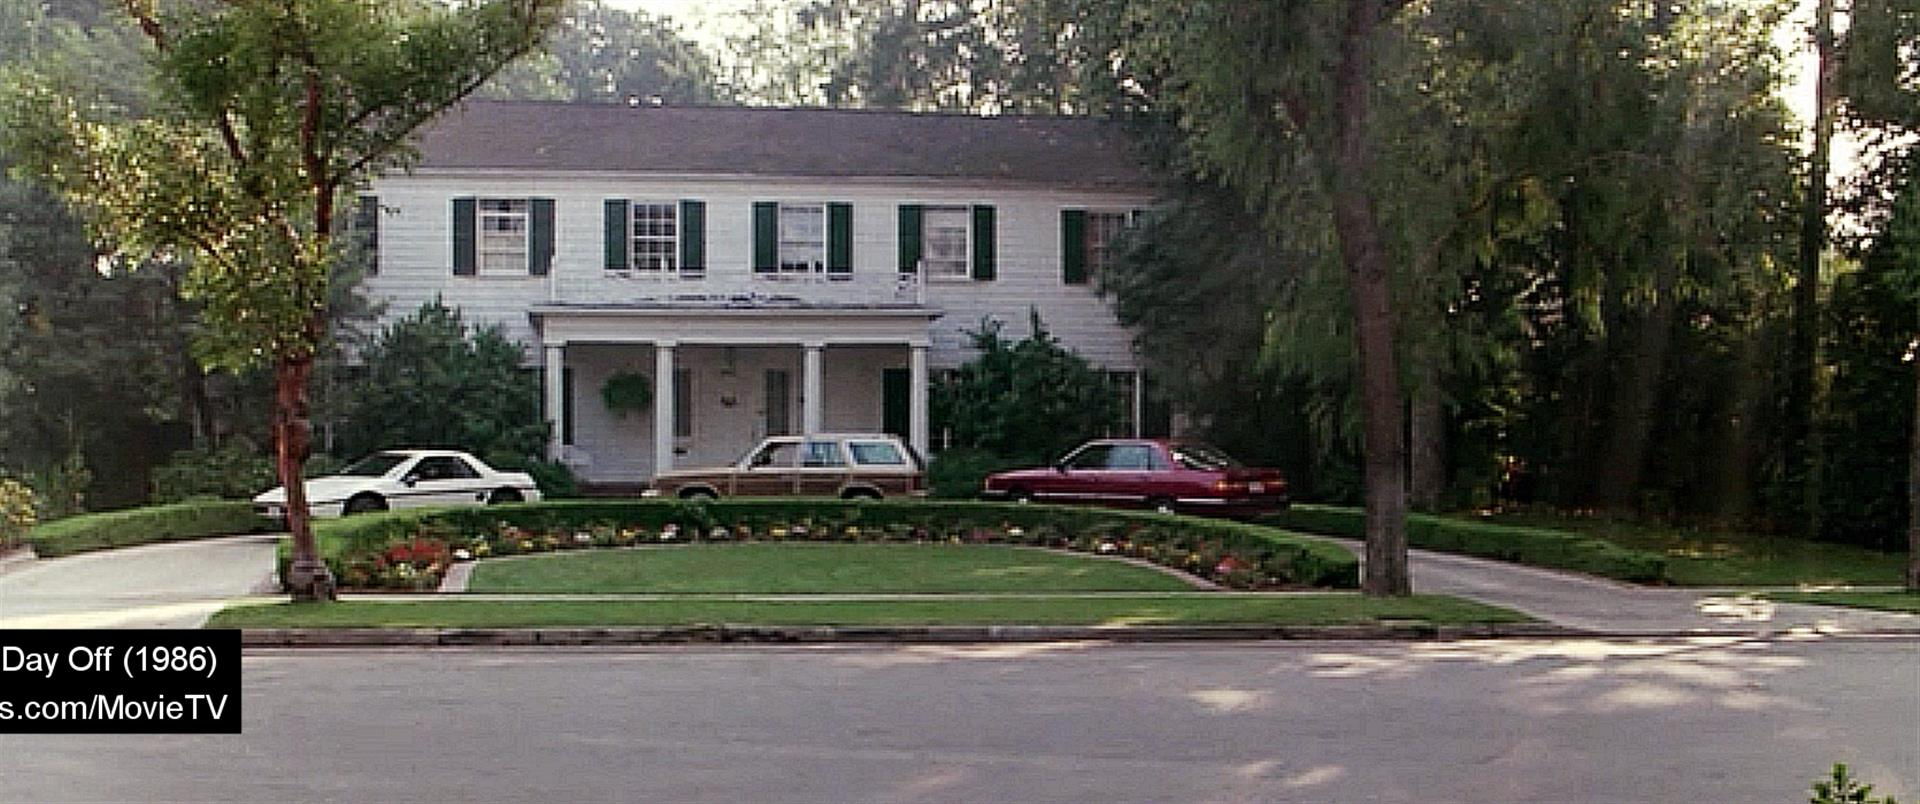 Ferris Bueller - AAADescriptionAAA | MovieTVLocations.Tavres.com